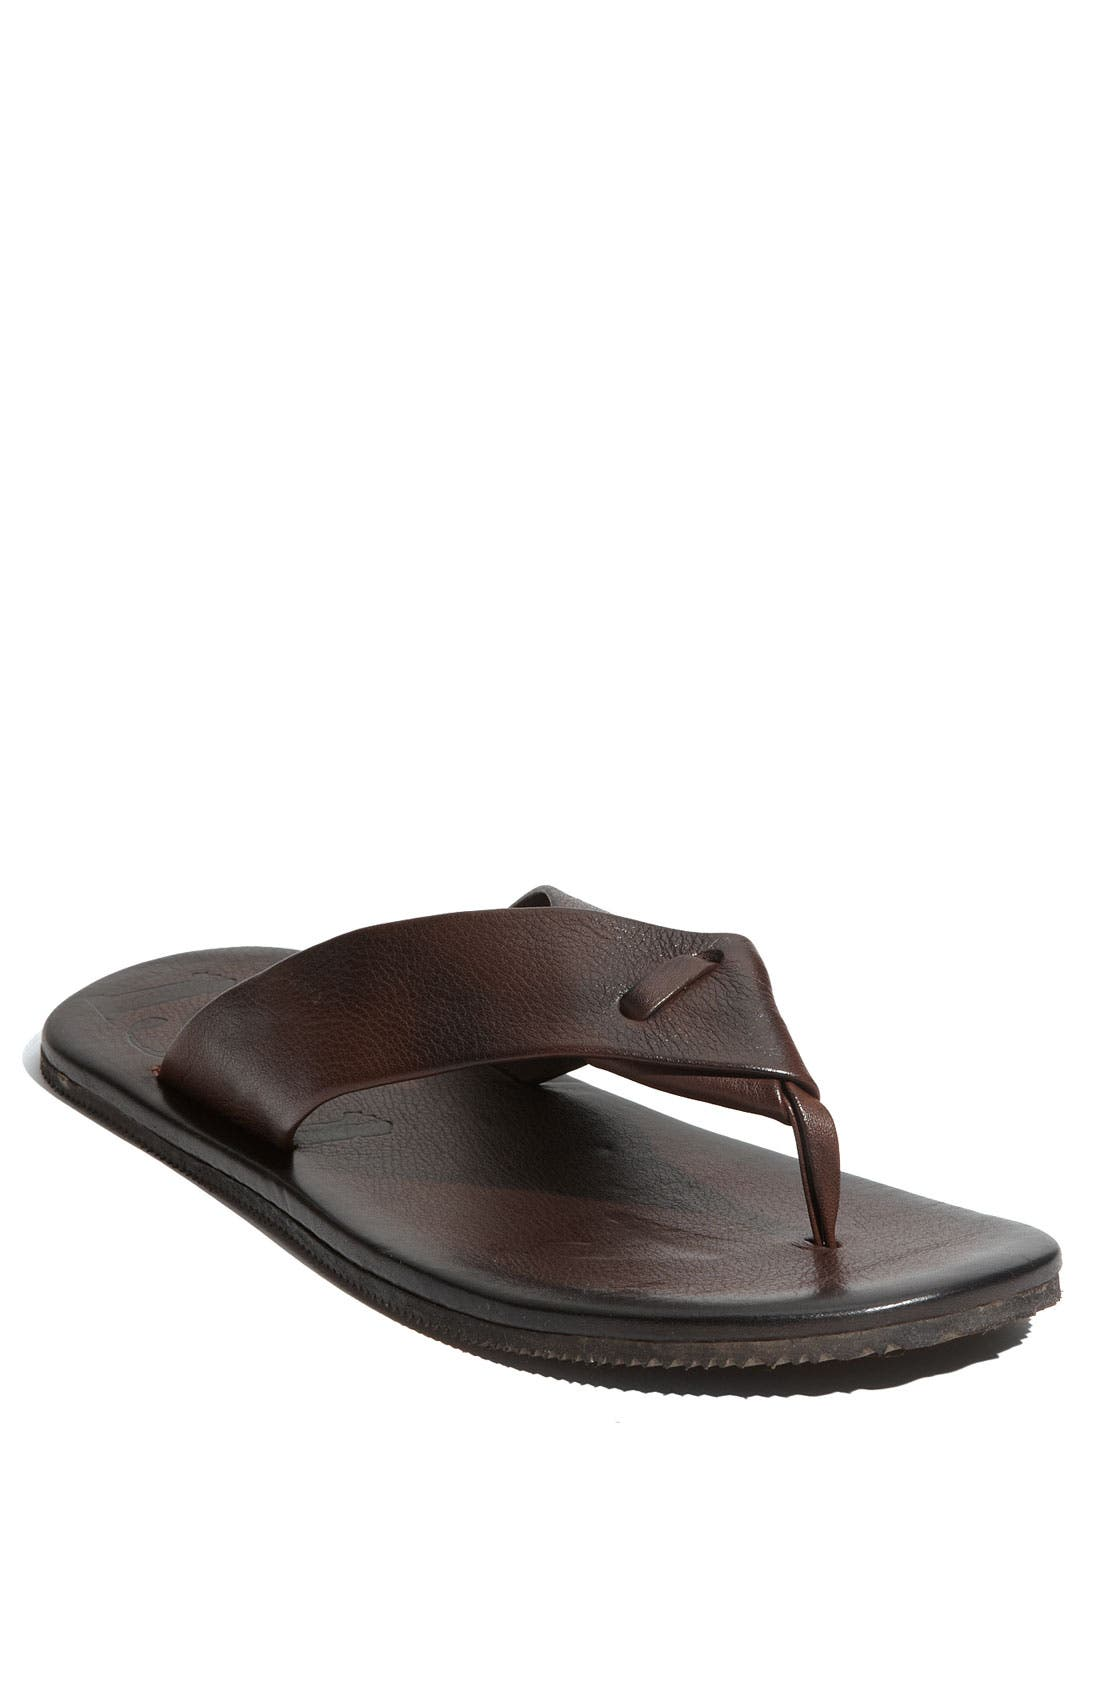 Main Image - 1901 'Breeze' Flip Flop (Men)